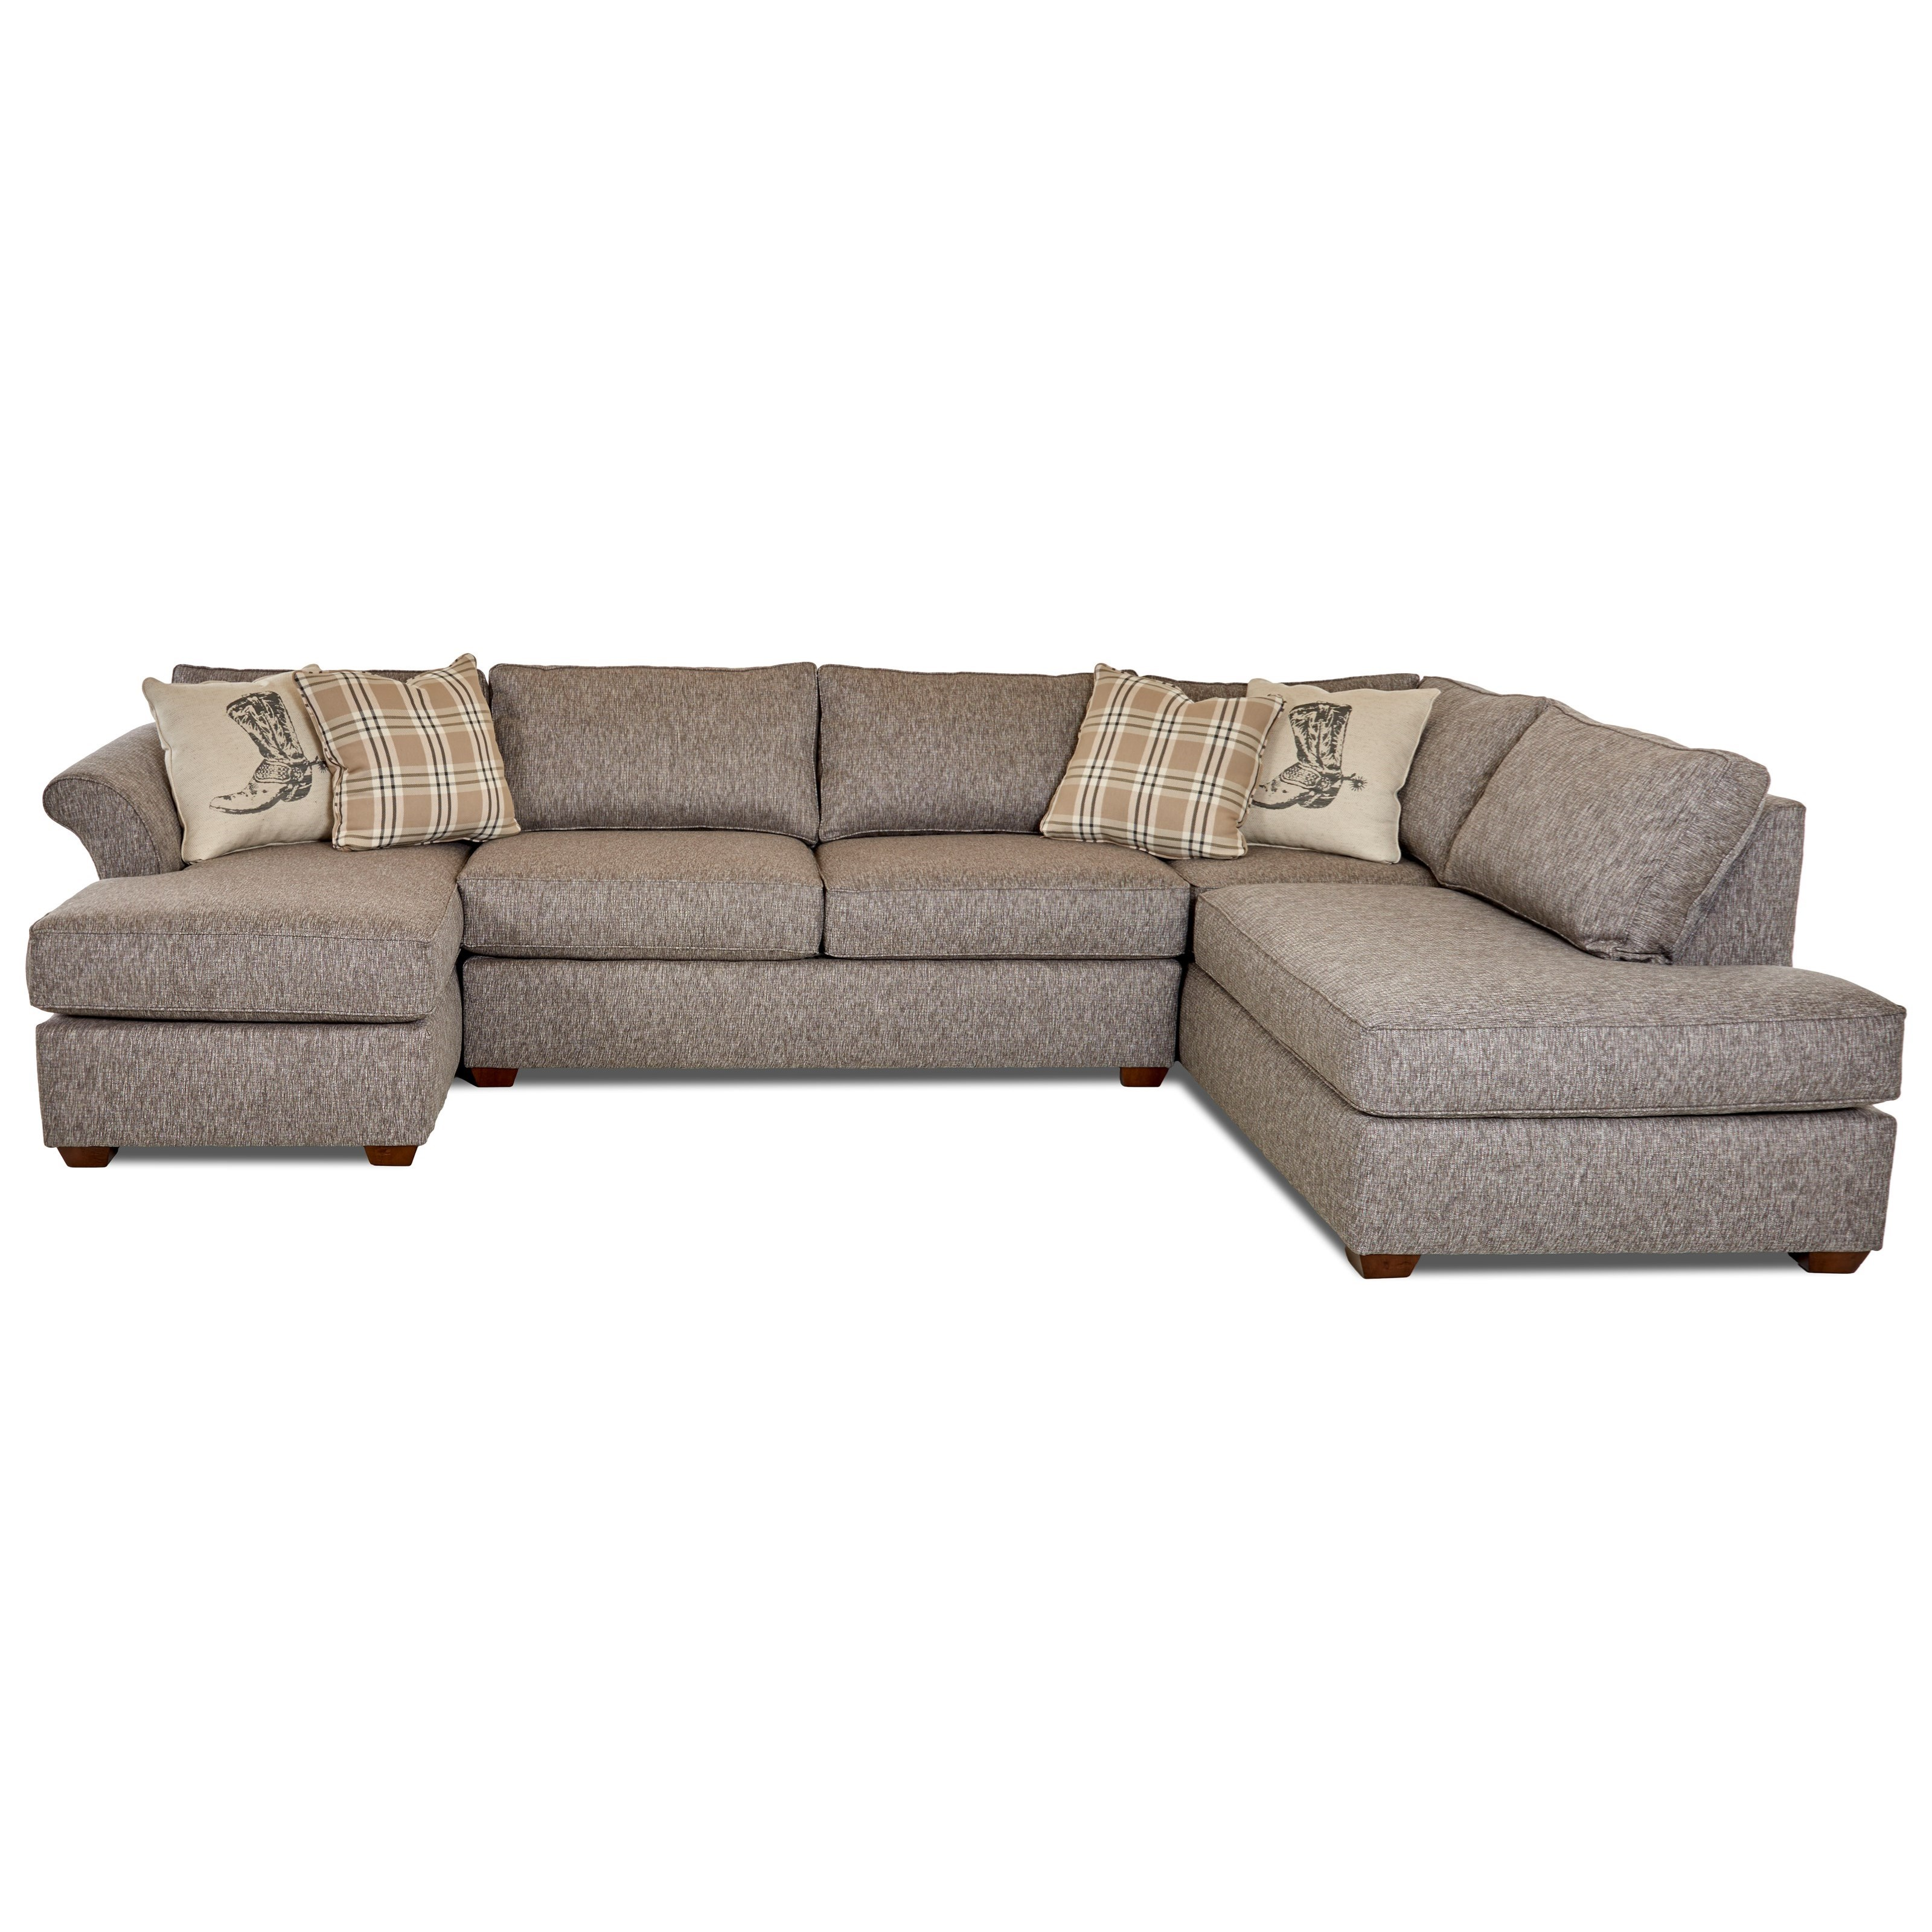 Jaxon 3 Pc Sectional Sofa by Klaussner at Catalog Outlet